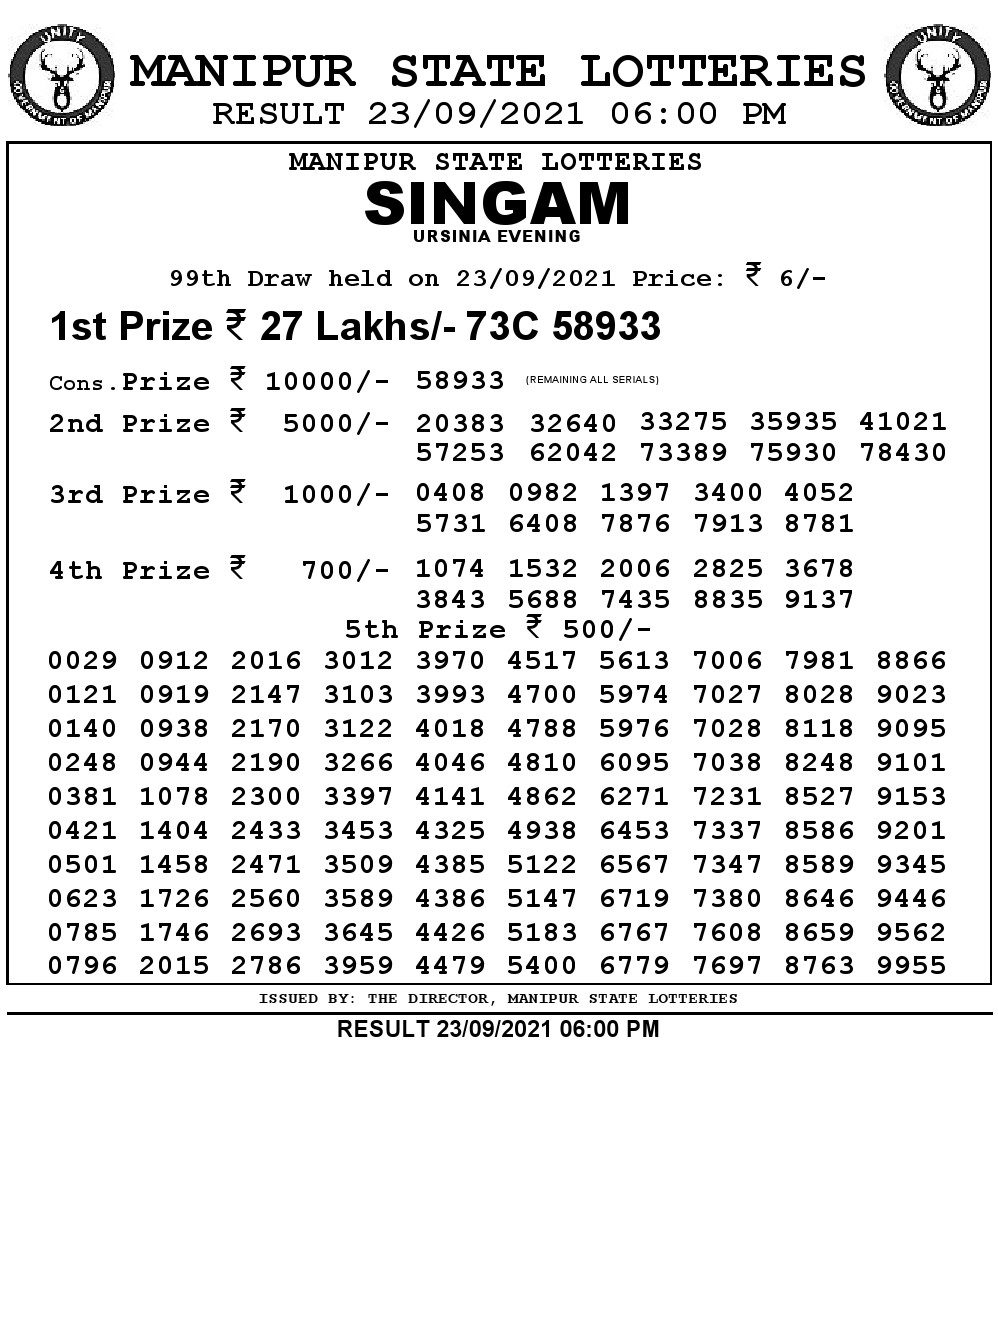 Manipur Lottery Result today 23/09/2021 singam 6pm pdf download